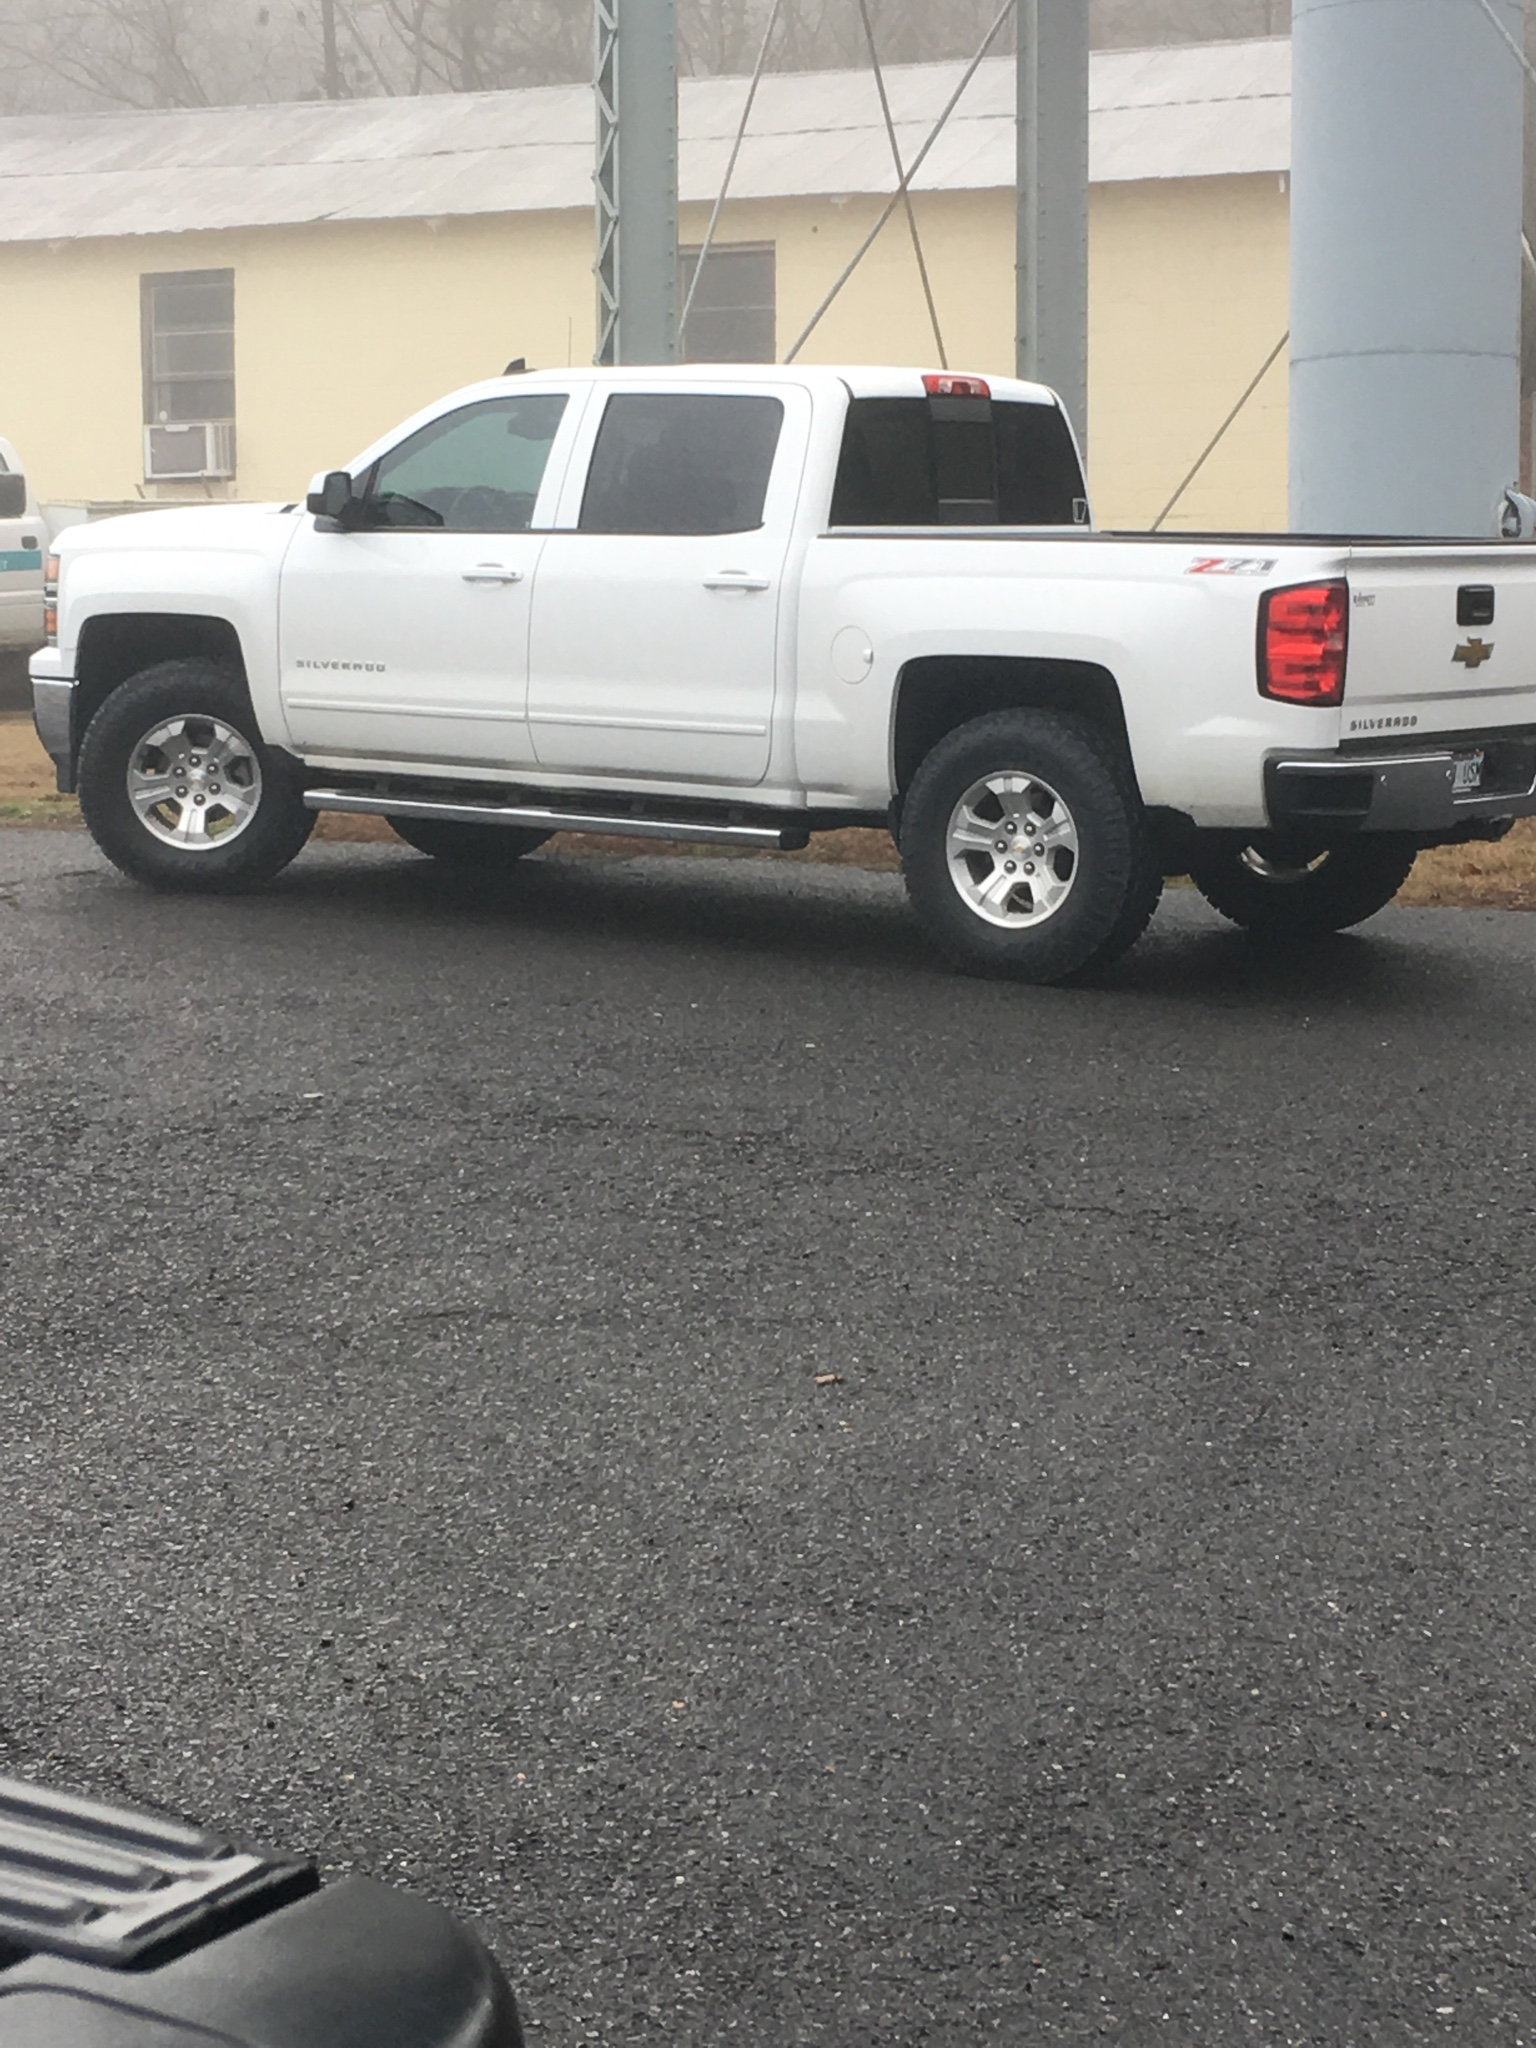 SilveradoSierra.com • OFFICIAL-Leveling kit picture/info ...